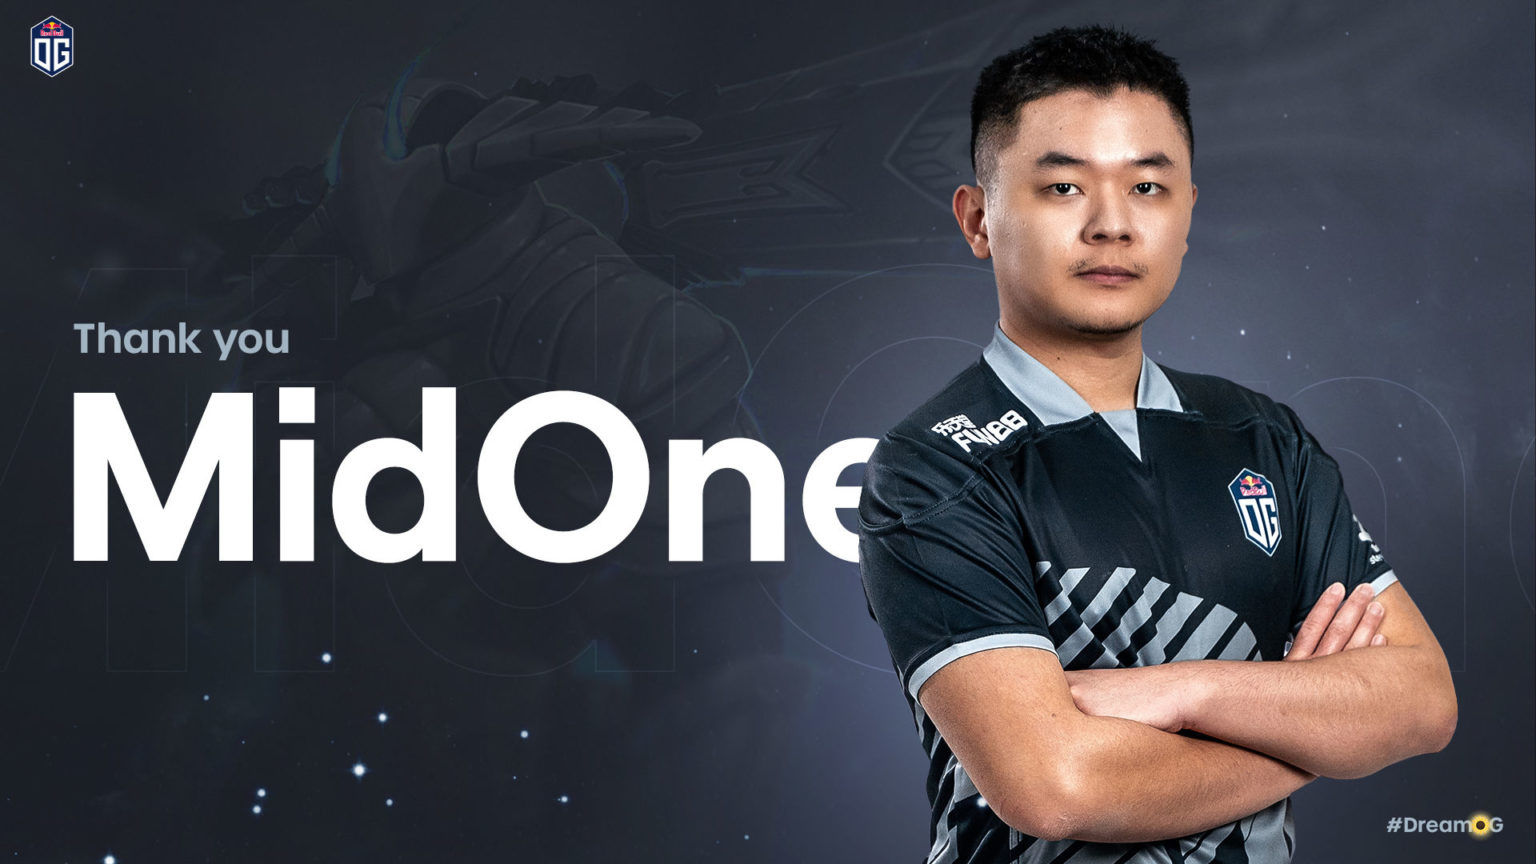 MidOne's exit from OG